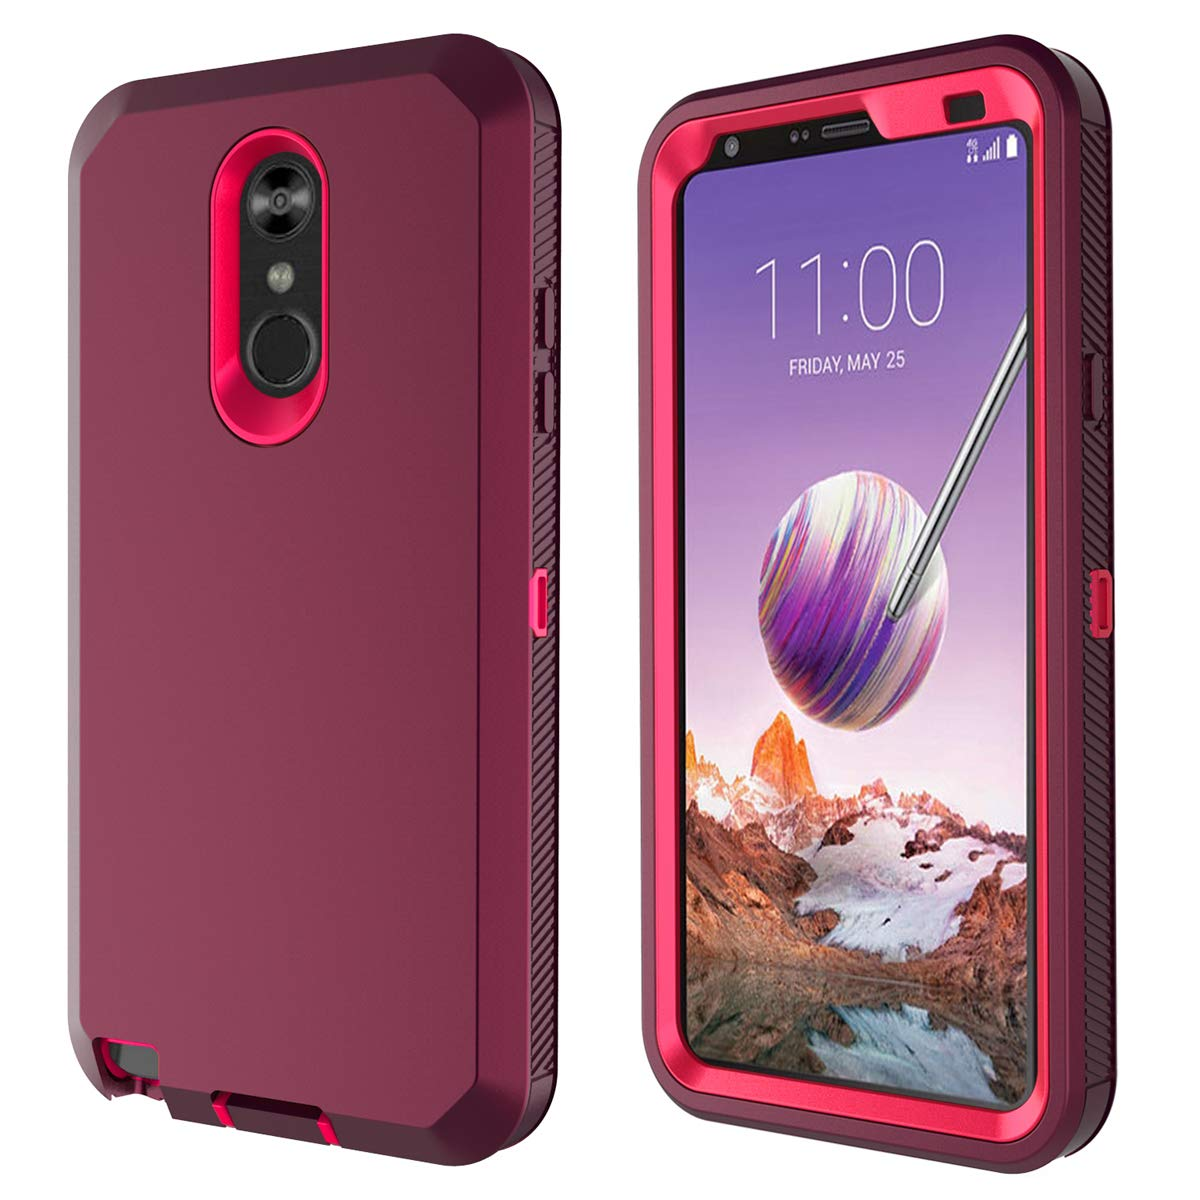 LG Stylo 4 Case, Hybrid High Impact Resistant Rugged Full-Body Shockproof Tri-Layer Heavy Duty Case, with Kickstand & Built-in Screen Protector for LG ...